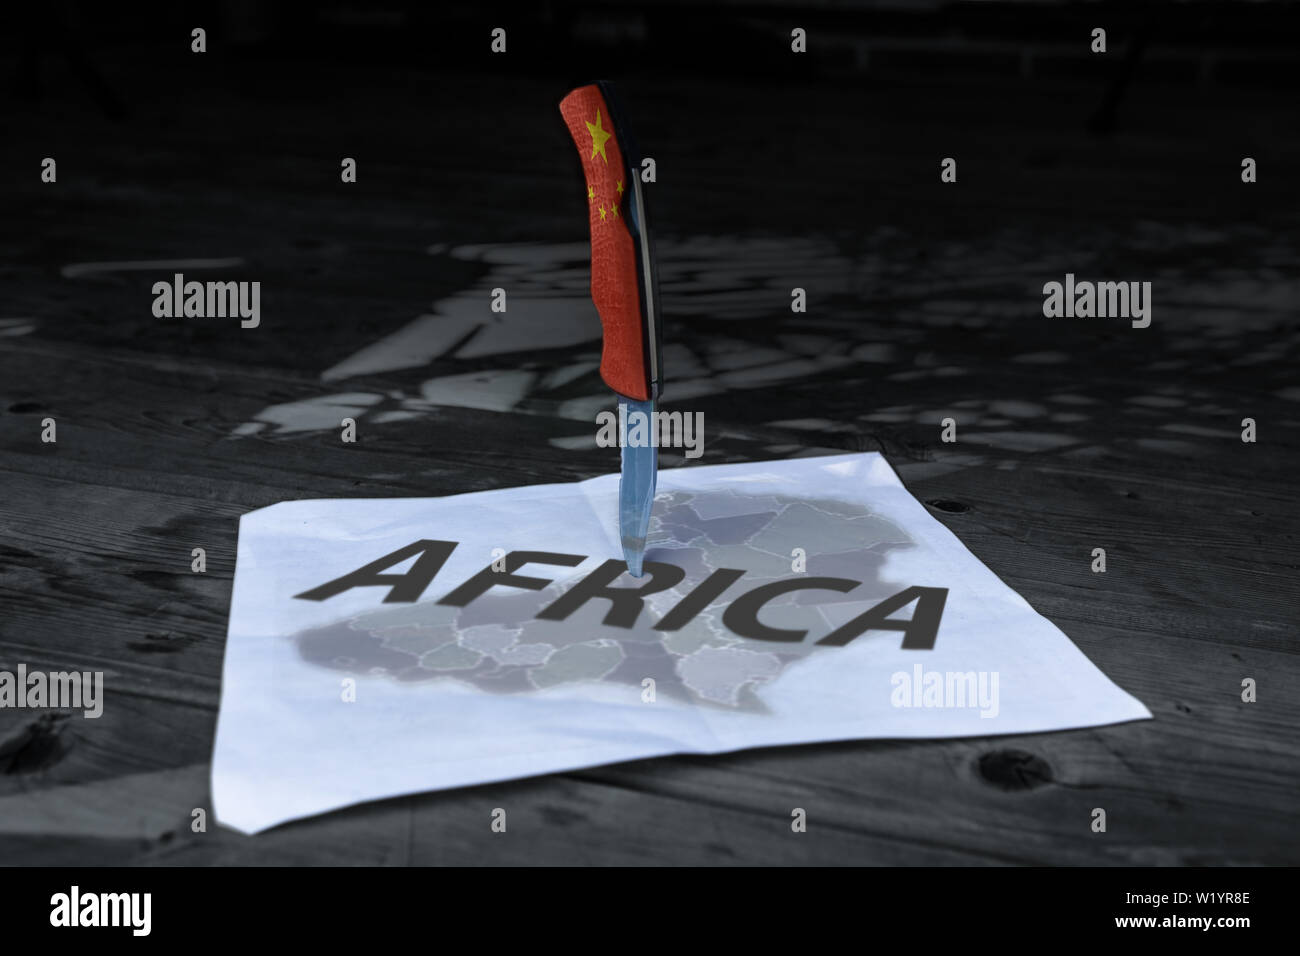 A 'Chinese' dagger is planted in the heart of the African continent. - Stock Image